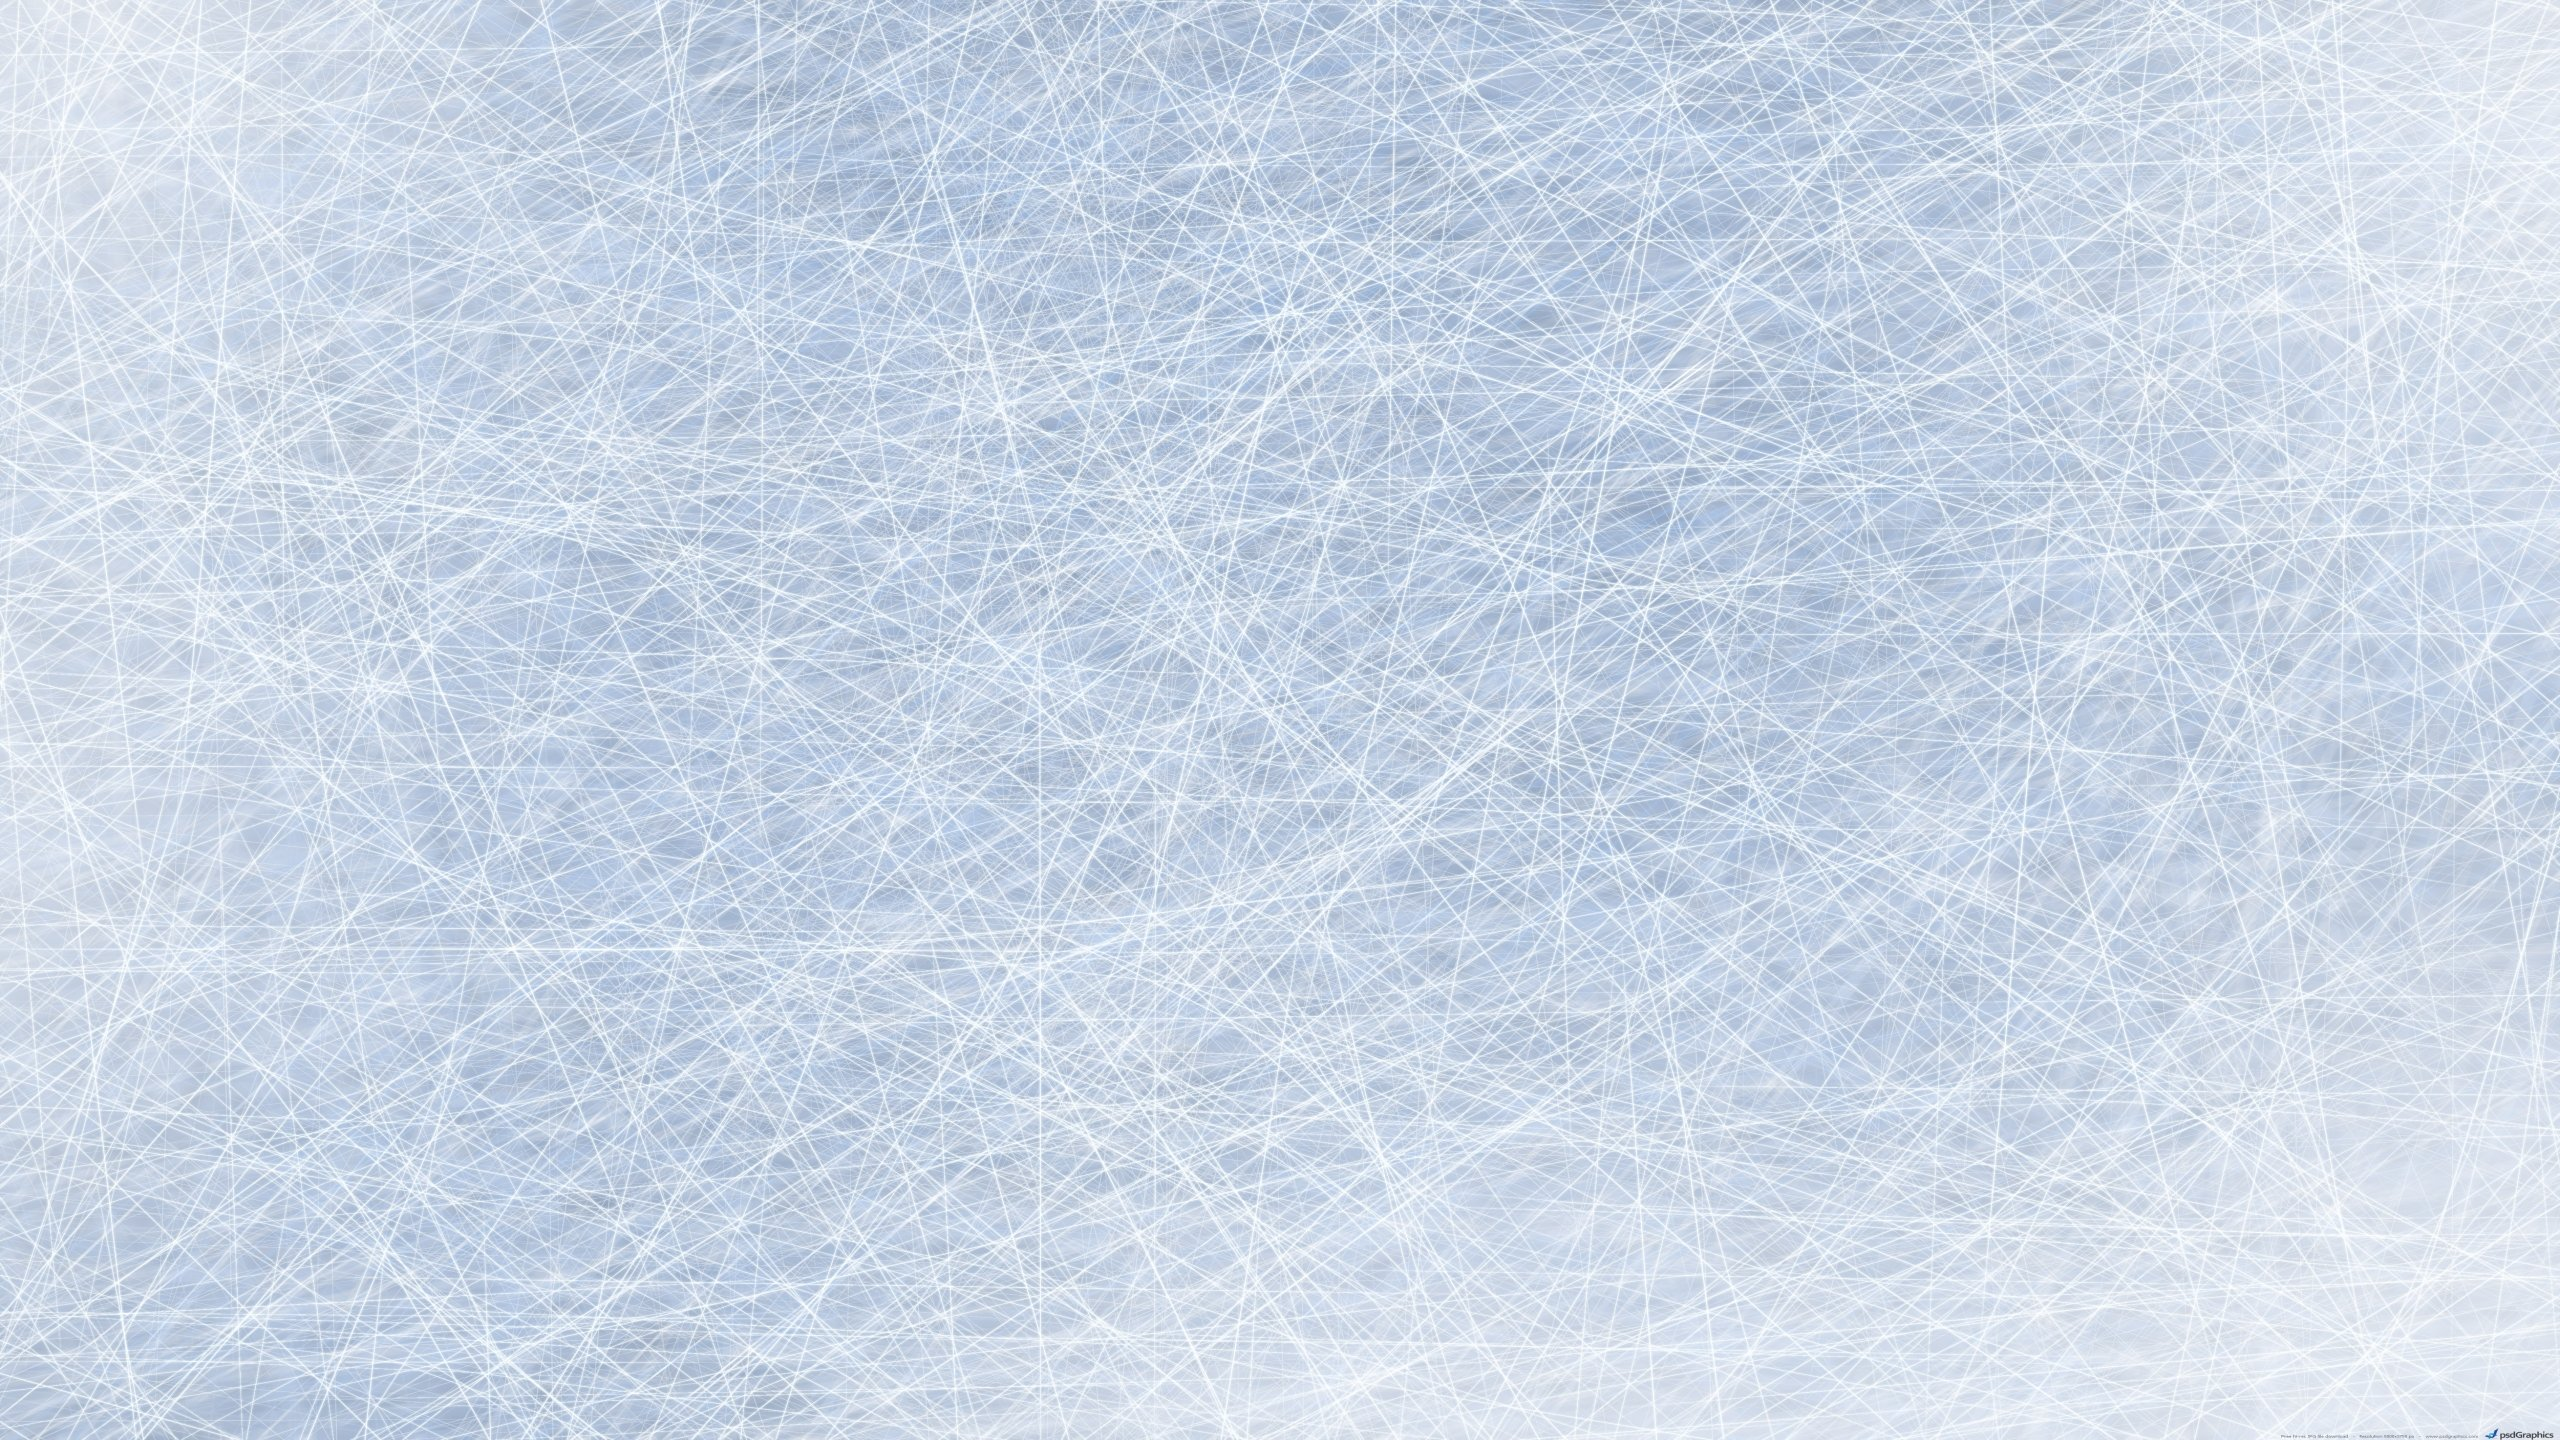 Ice Hockey Wallpapers Hd Wallpapers 2560x1440